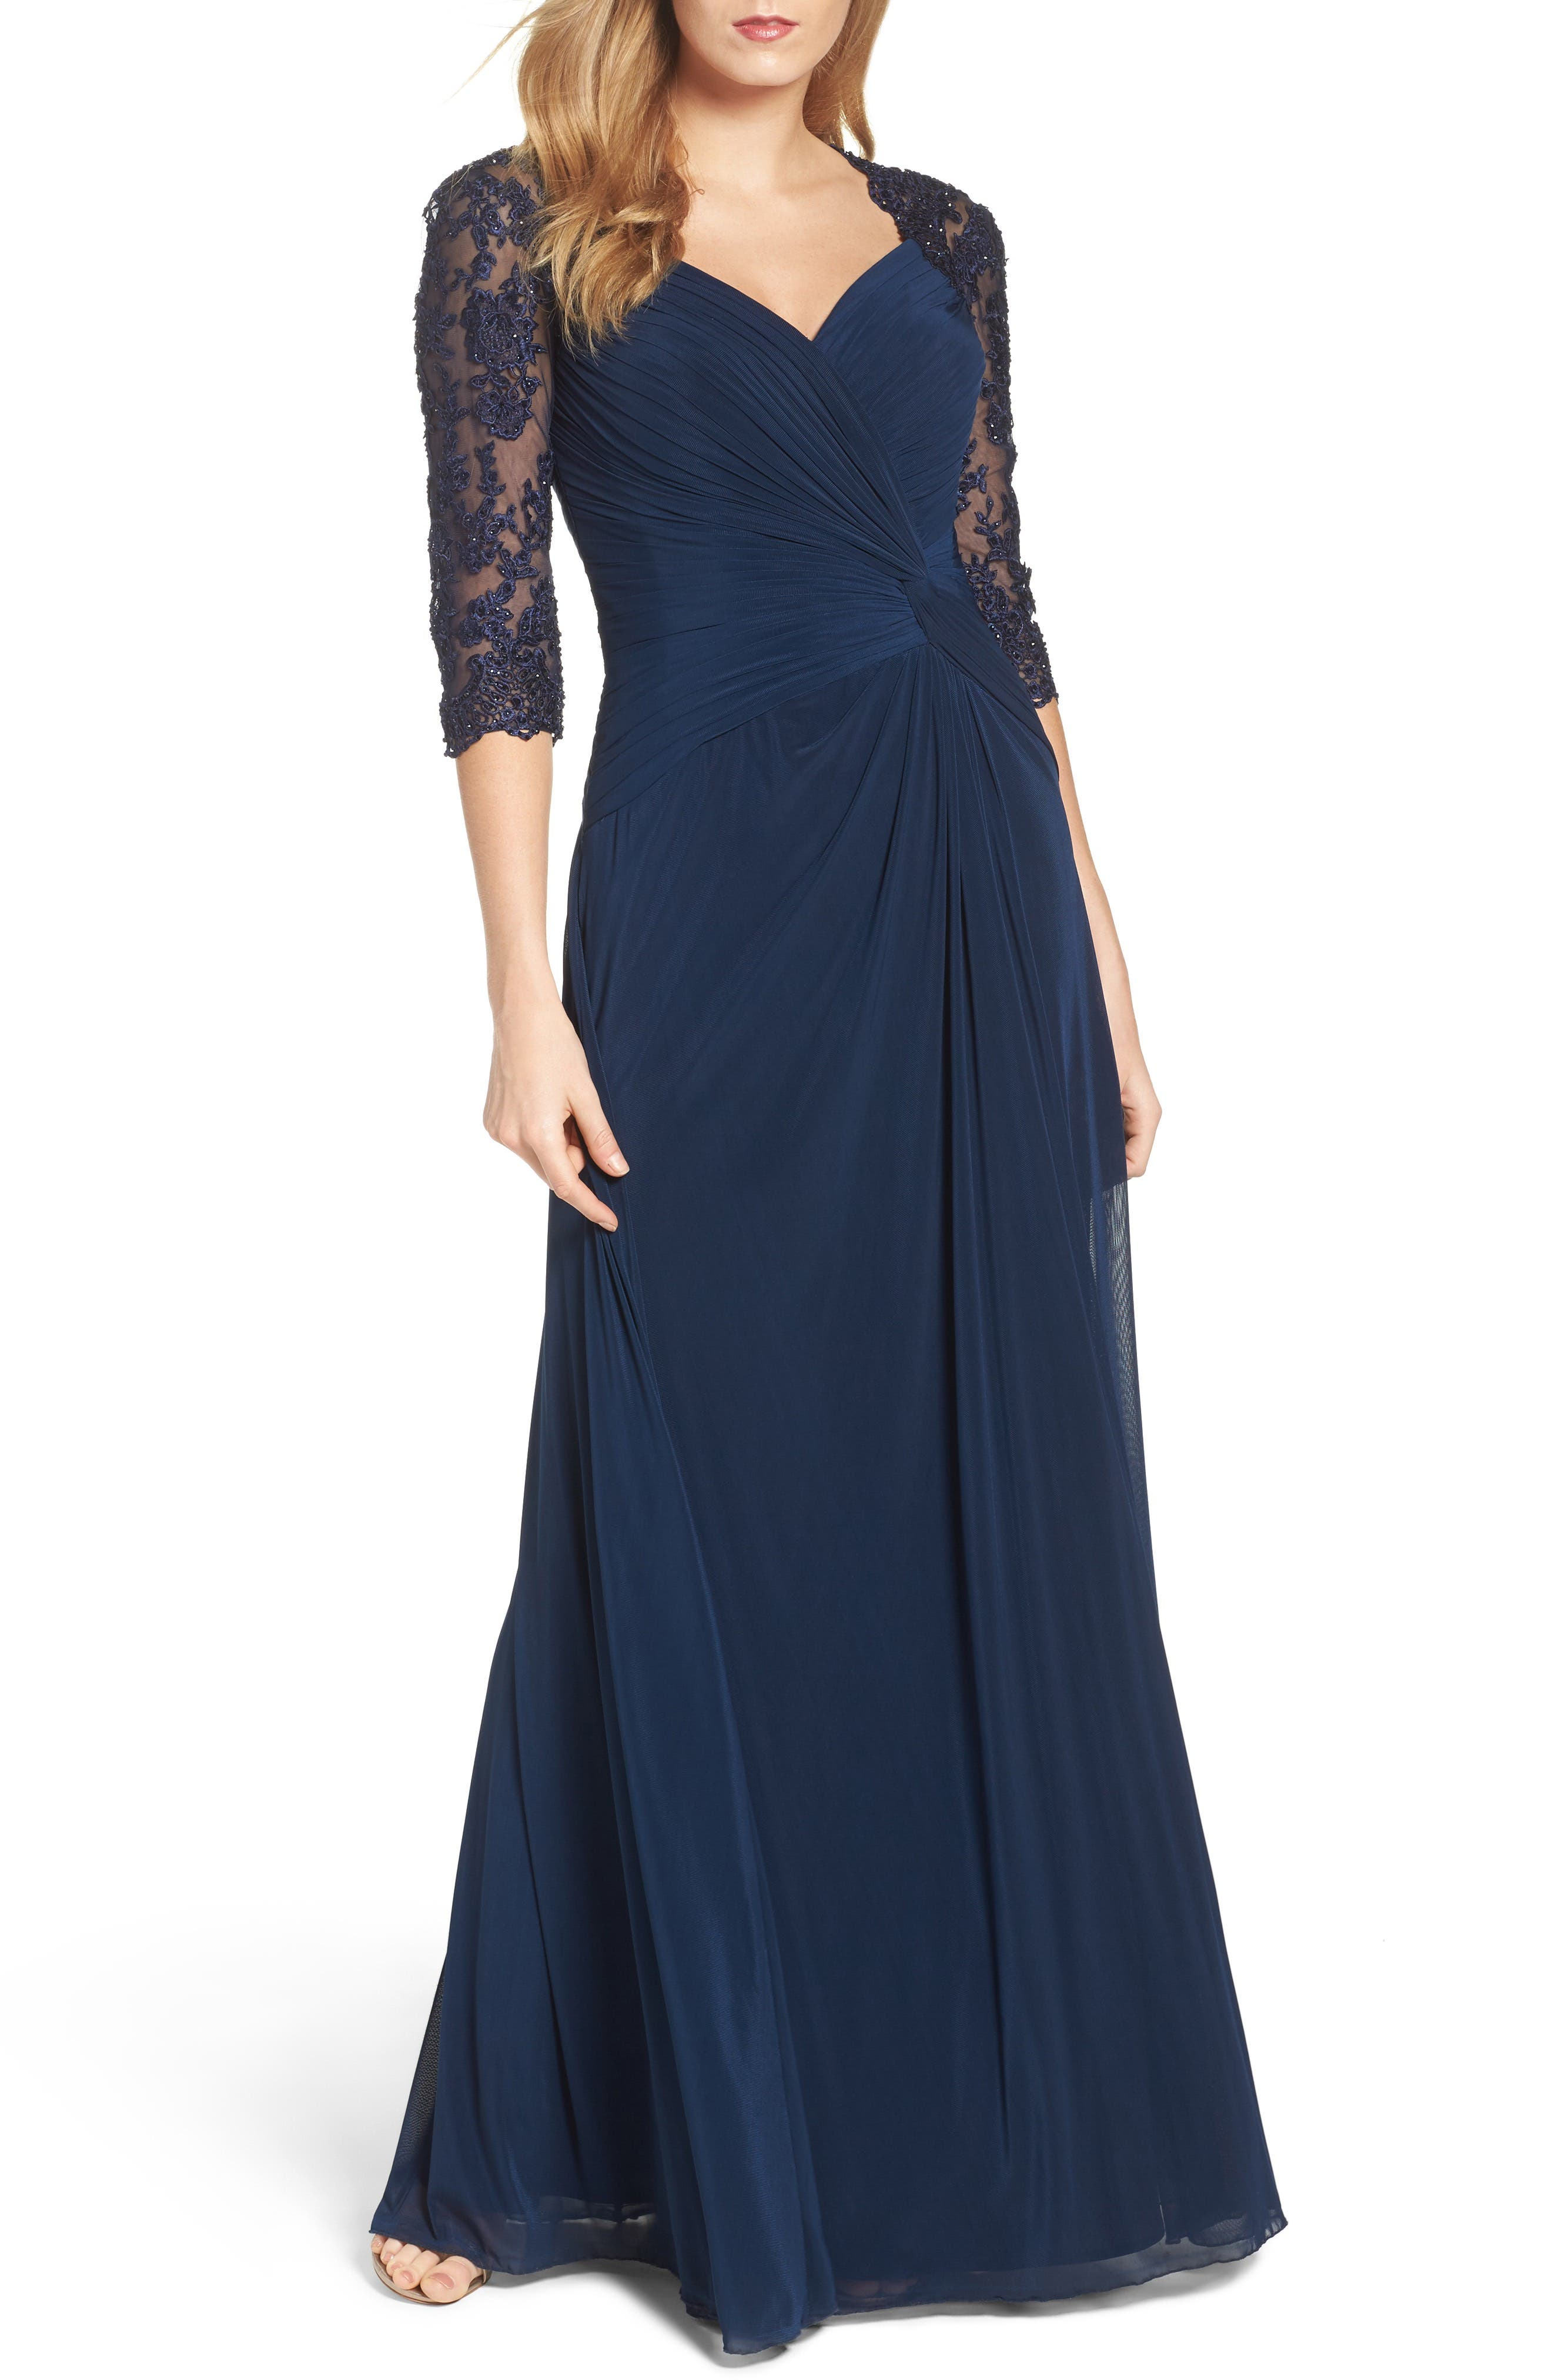 Nordstrom Wedding Dresses For Mother Of The Groom Off 79 Buy